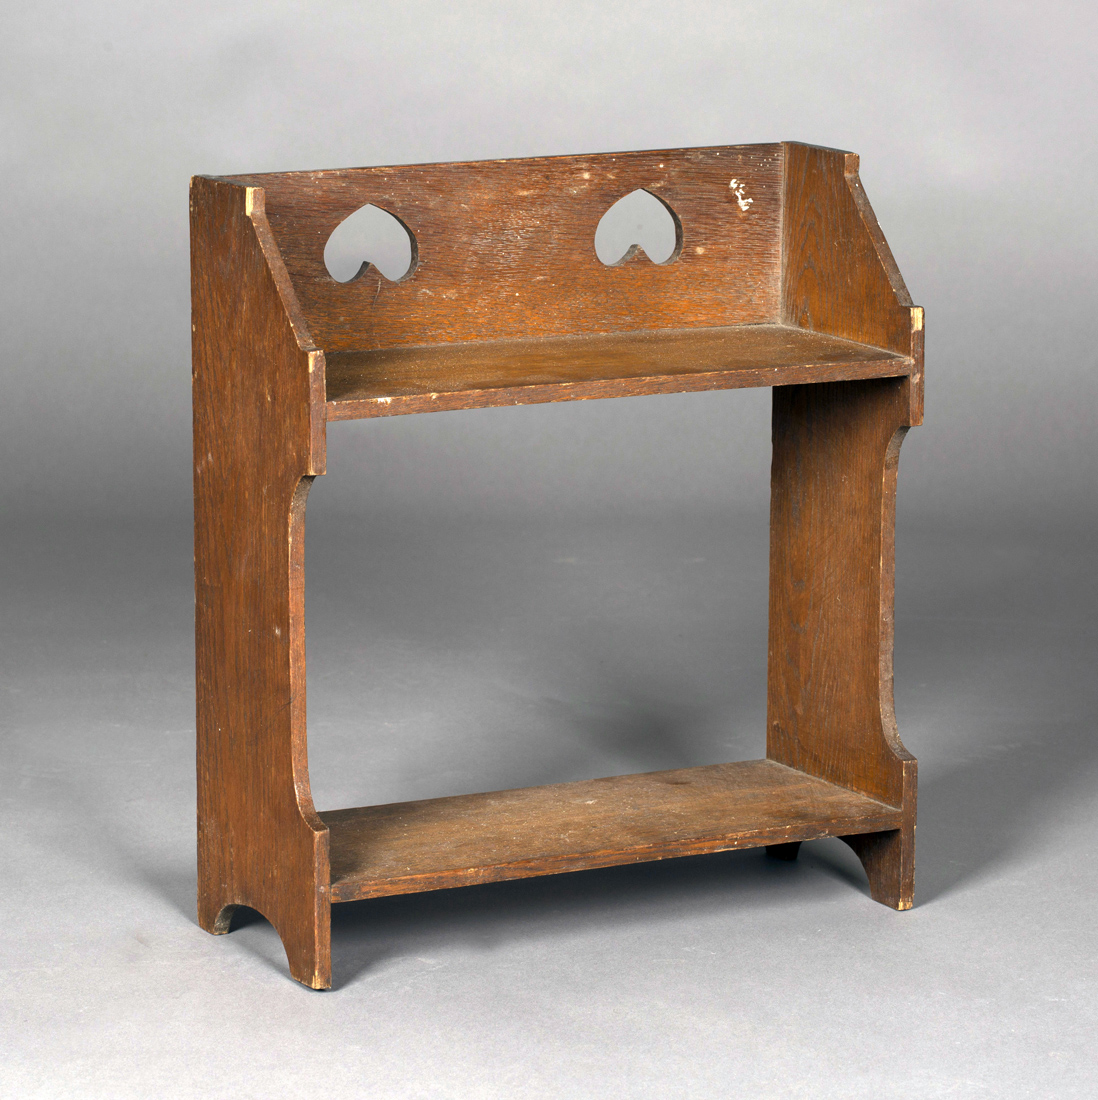 An Edwardian Arts And Crafts Oak Two Tier Bookshelf The Gallery Back With Pierced Inverted Hear